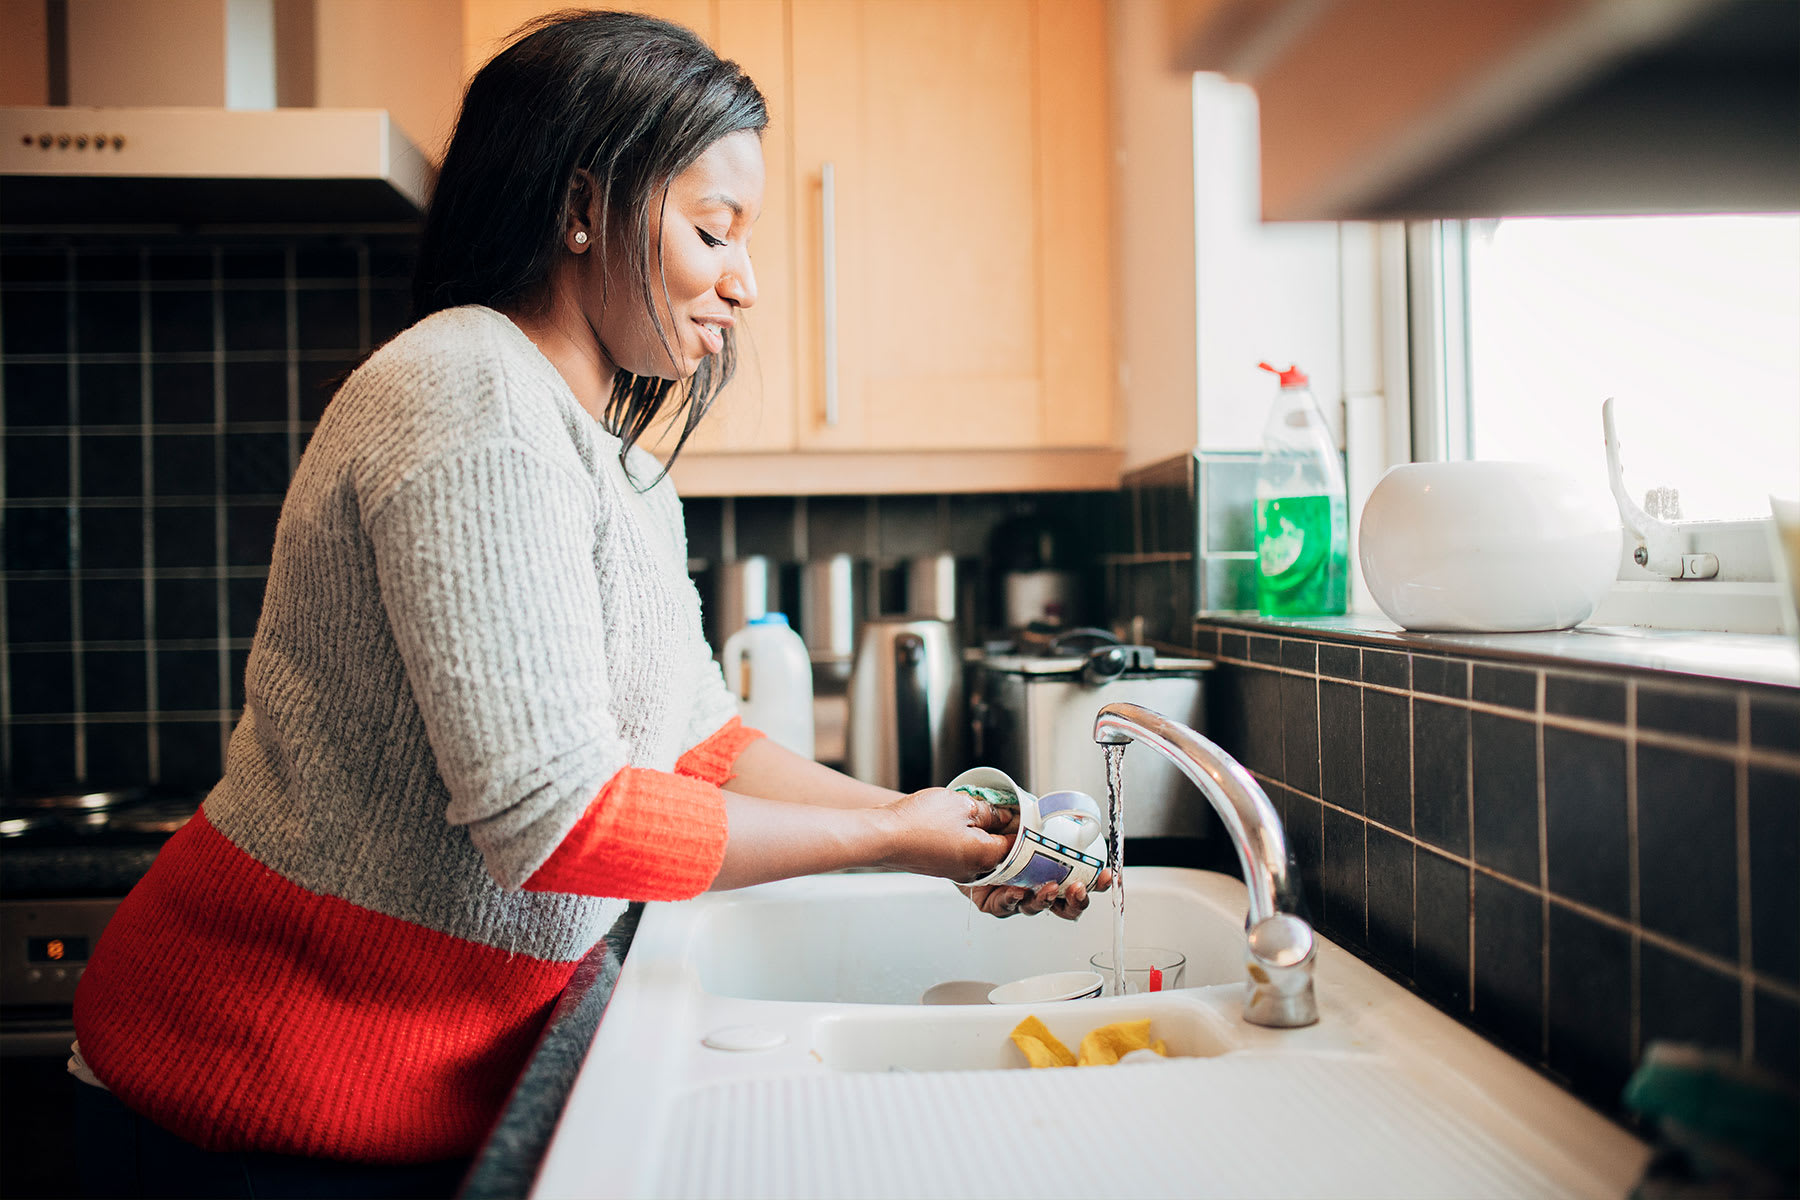 Woman washing dishes in her kitchen sink.